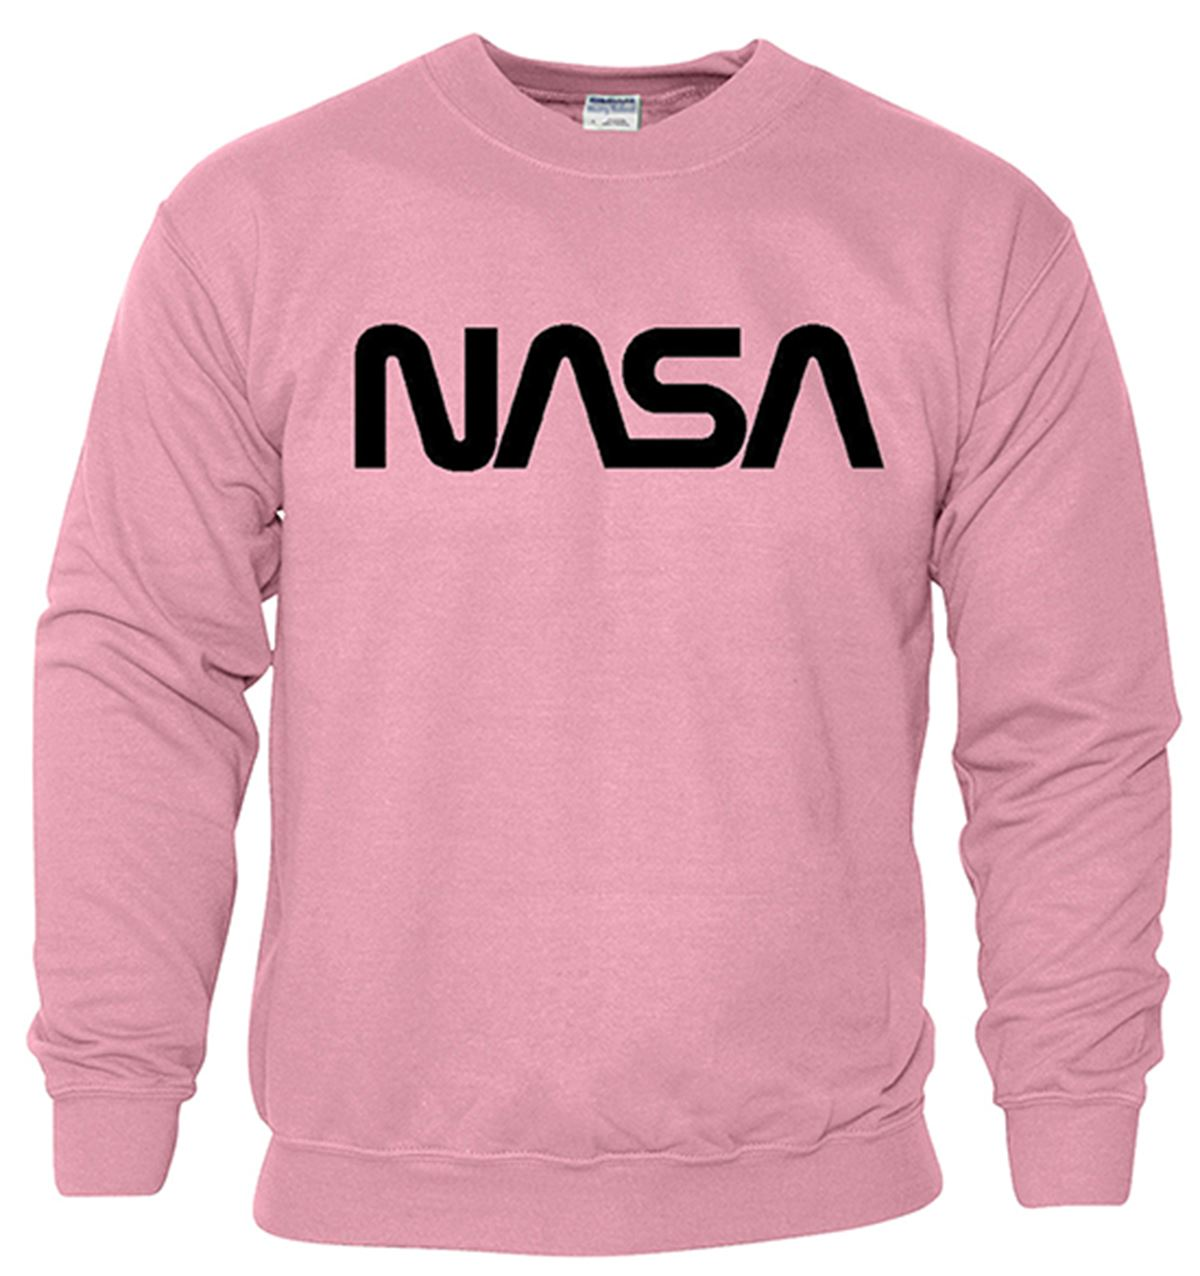 NASA Mens Sweat Shirt Hipster Retro Space Top Geek Nerd Slogan Tumblr Sweat | eBay